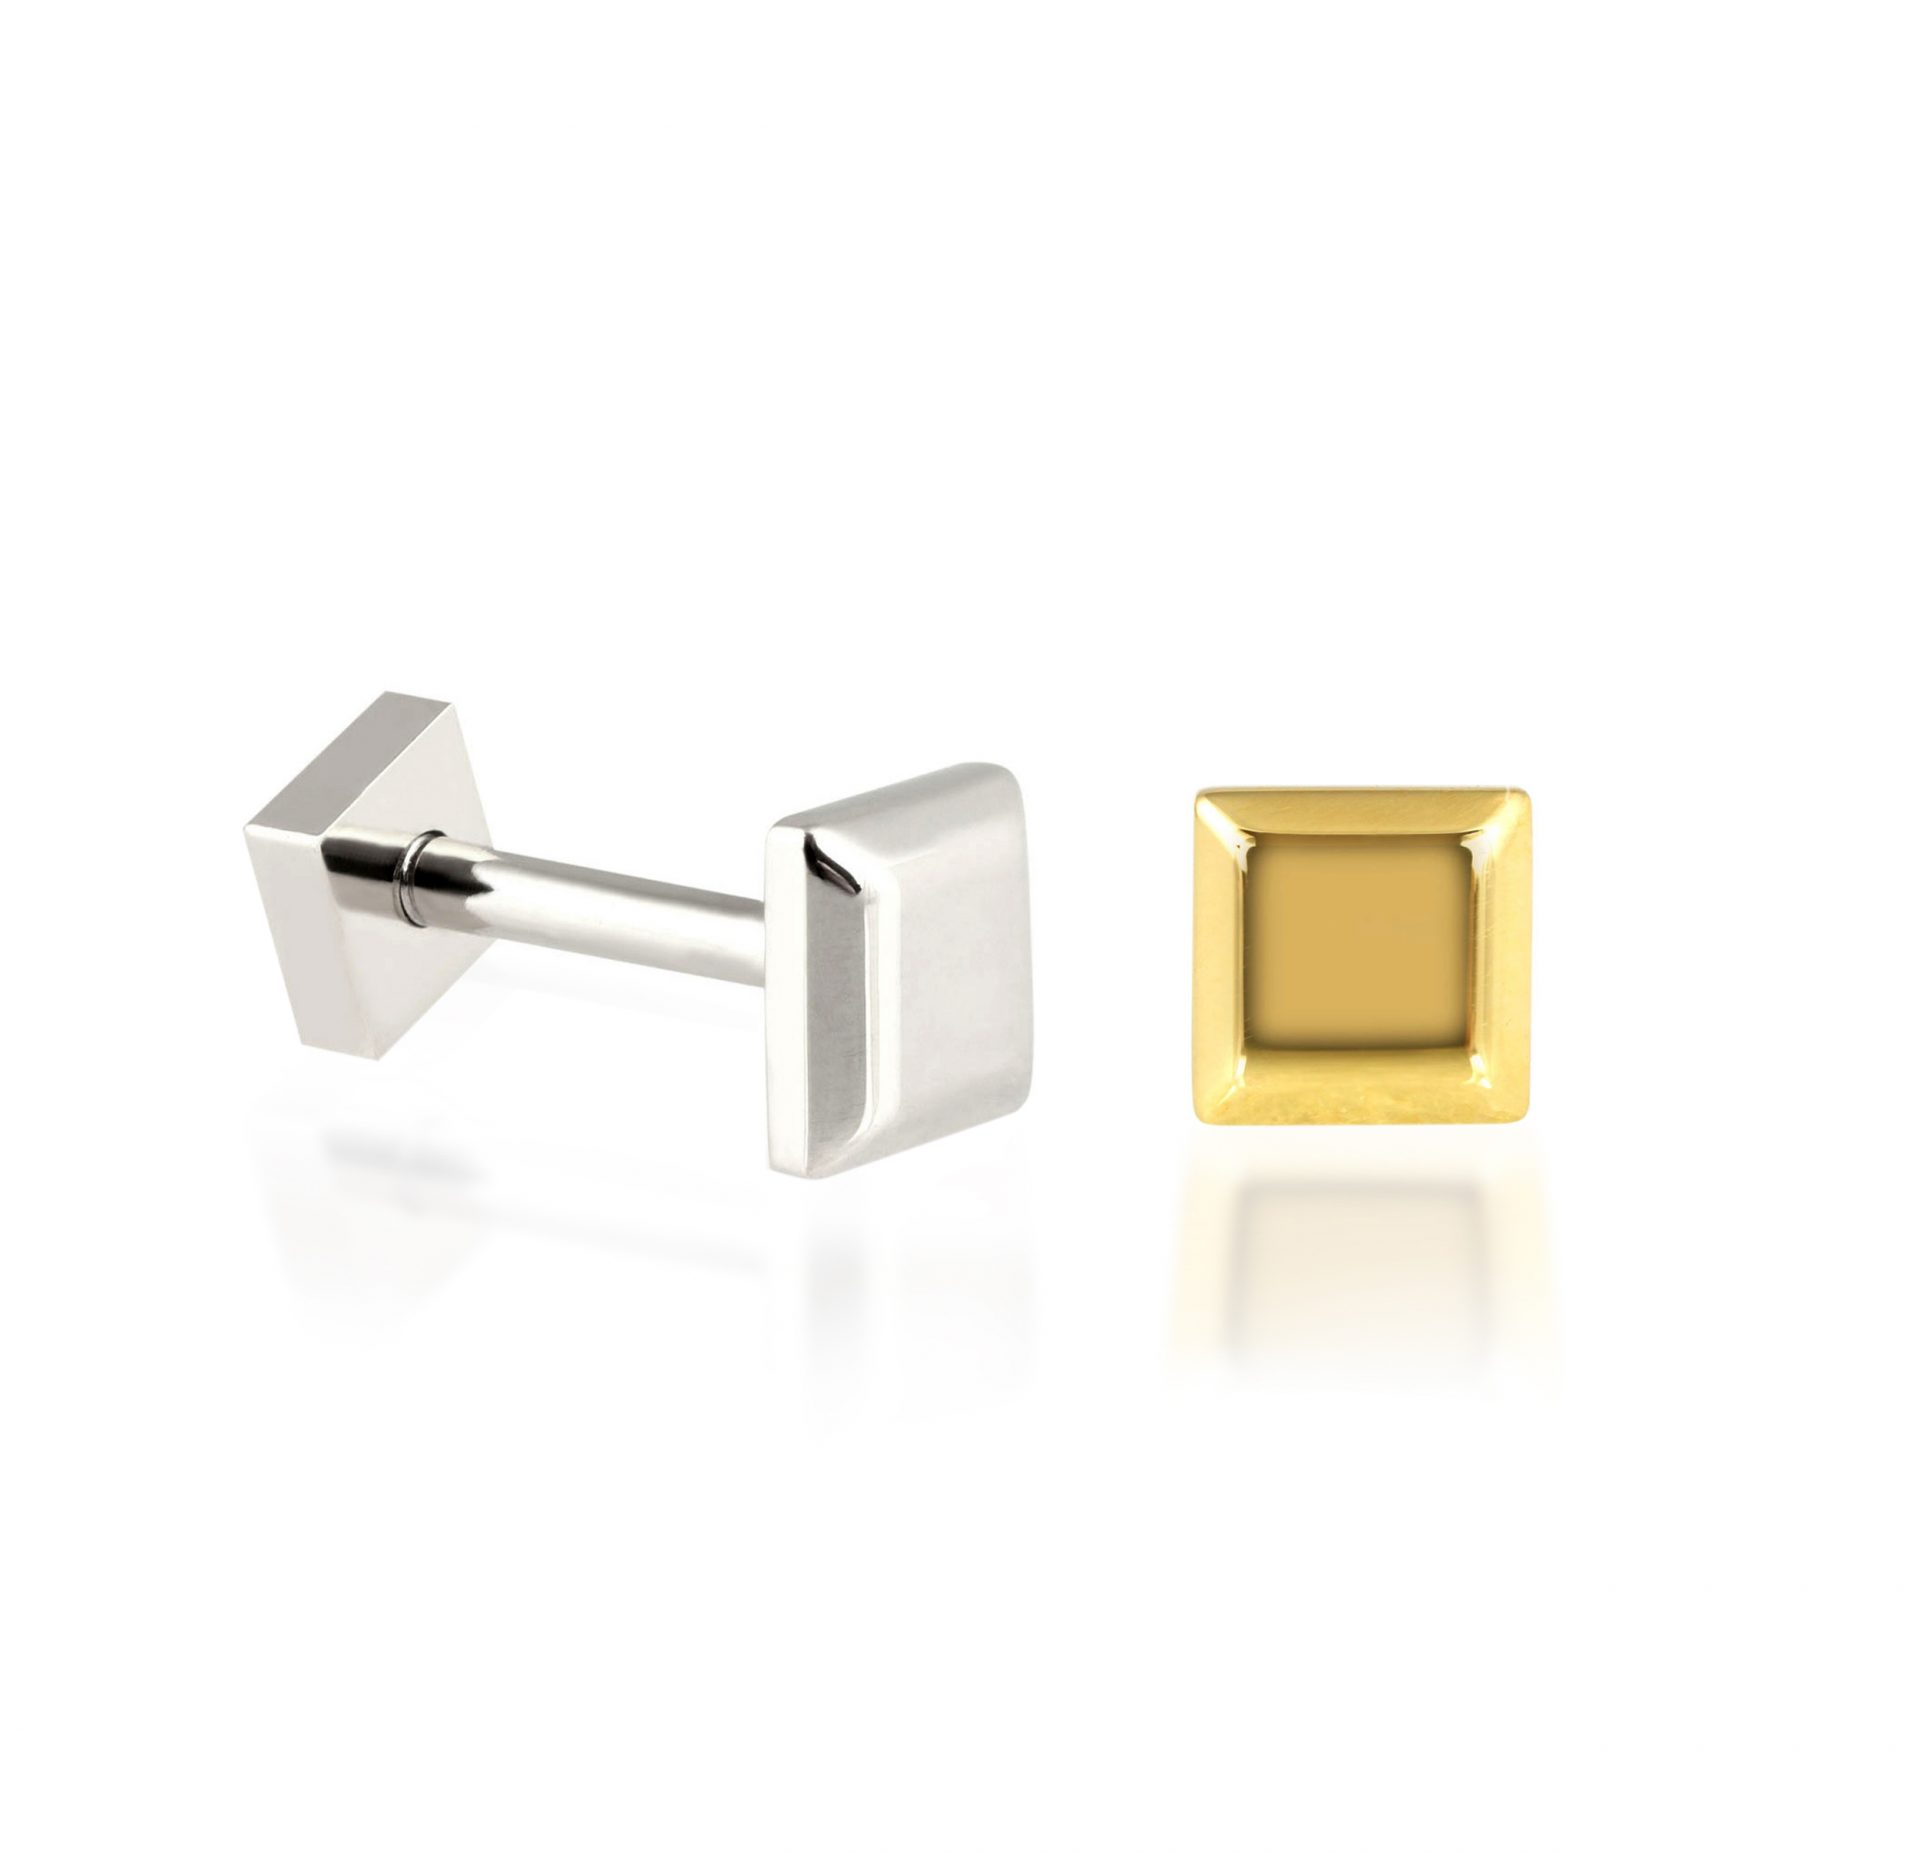 minimalistic-piercing-18k-solid-white-yellow-gold-lena-cohen-london-luxury-piercings-reasonable-prices